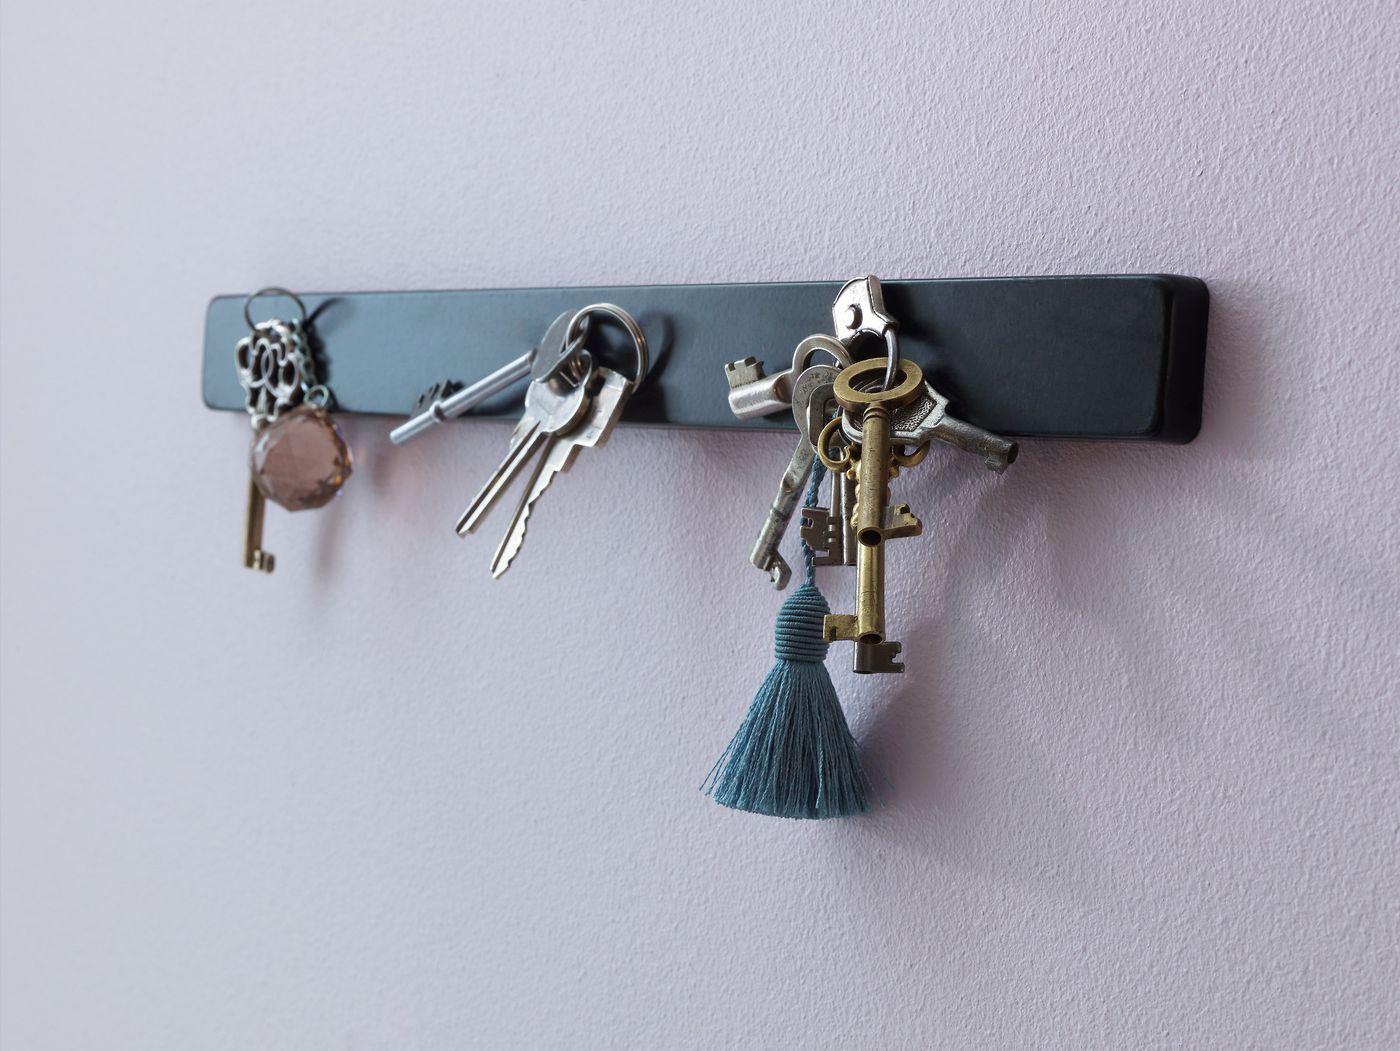 Hilarious Ikea Storing Keys Magnetic Board Fintorp Ikea Magnetic Board Australia Ikea Magnetic Board Hack Storing Keys Magnetic Board Fintorp Idea houzz-03 Ikea Magnetic Board